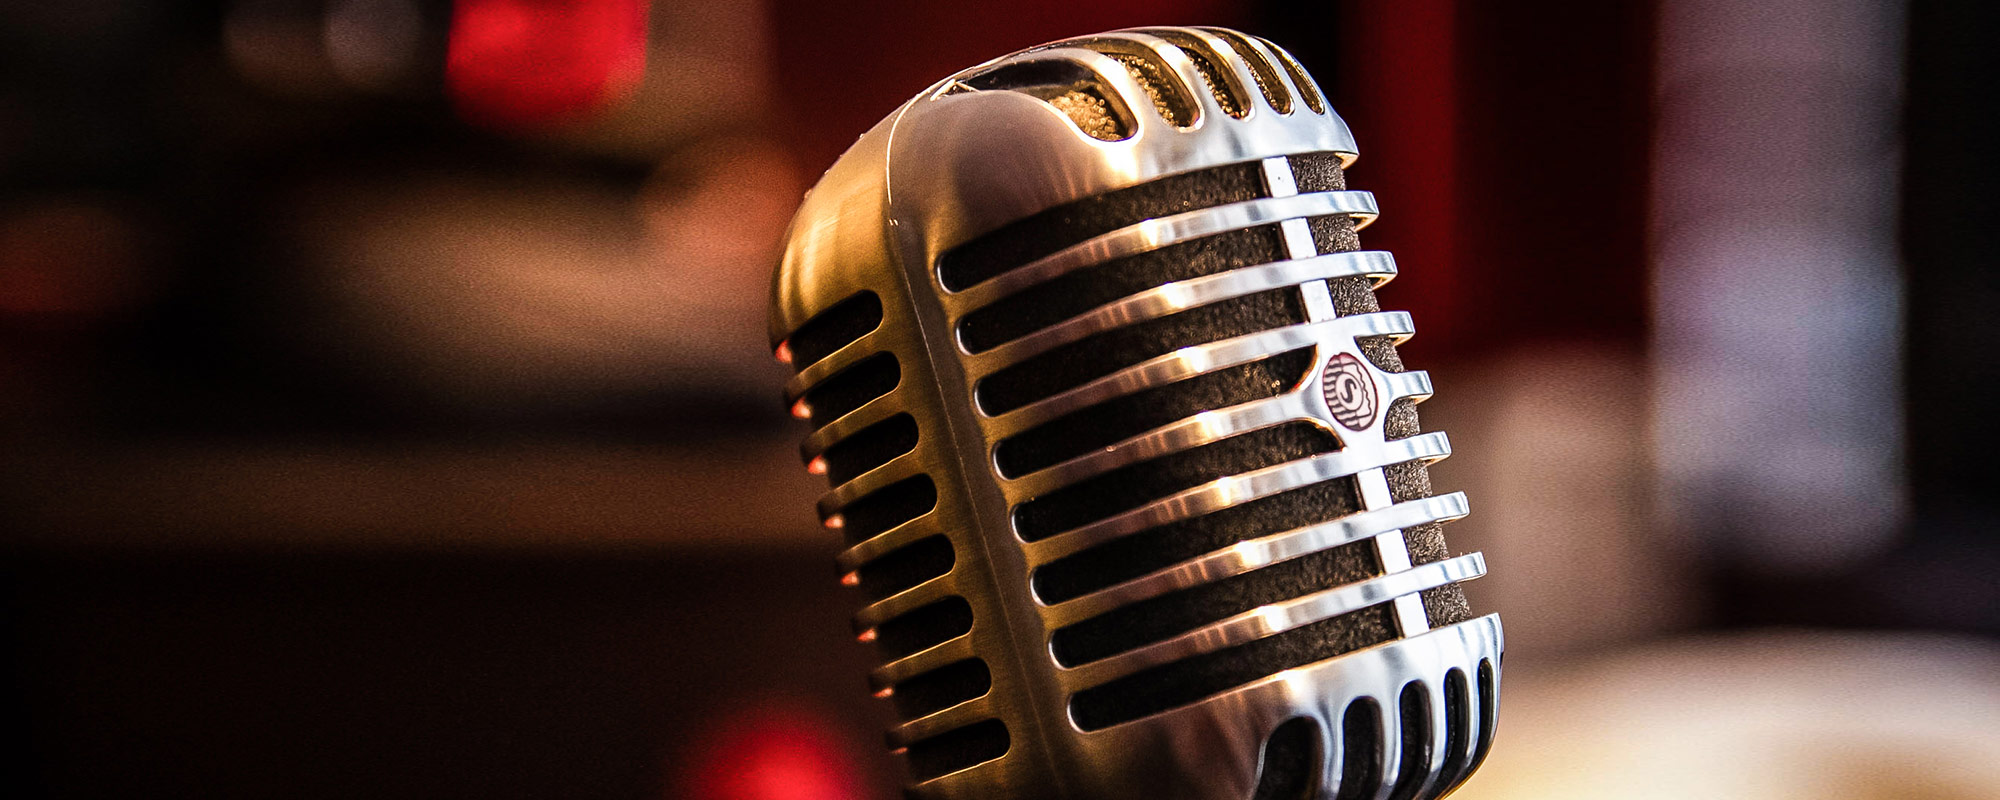 header-microphone.jpg